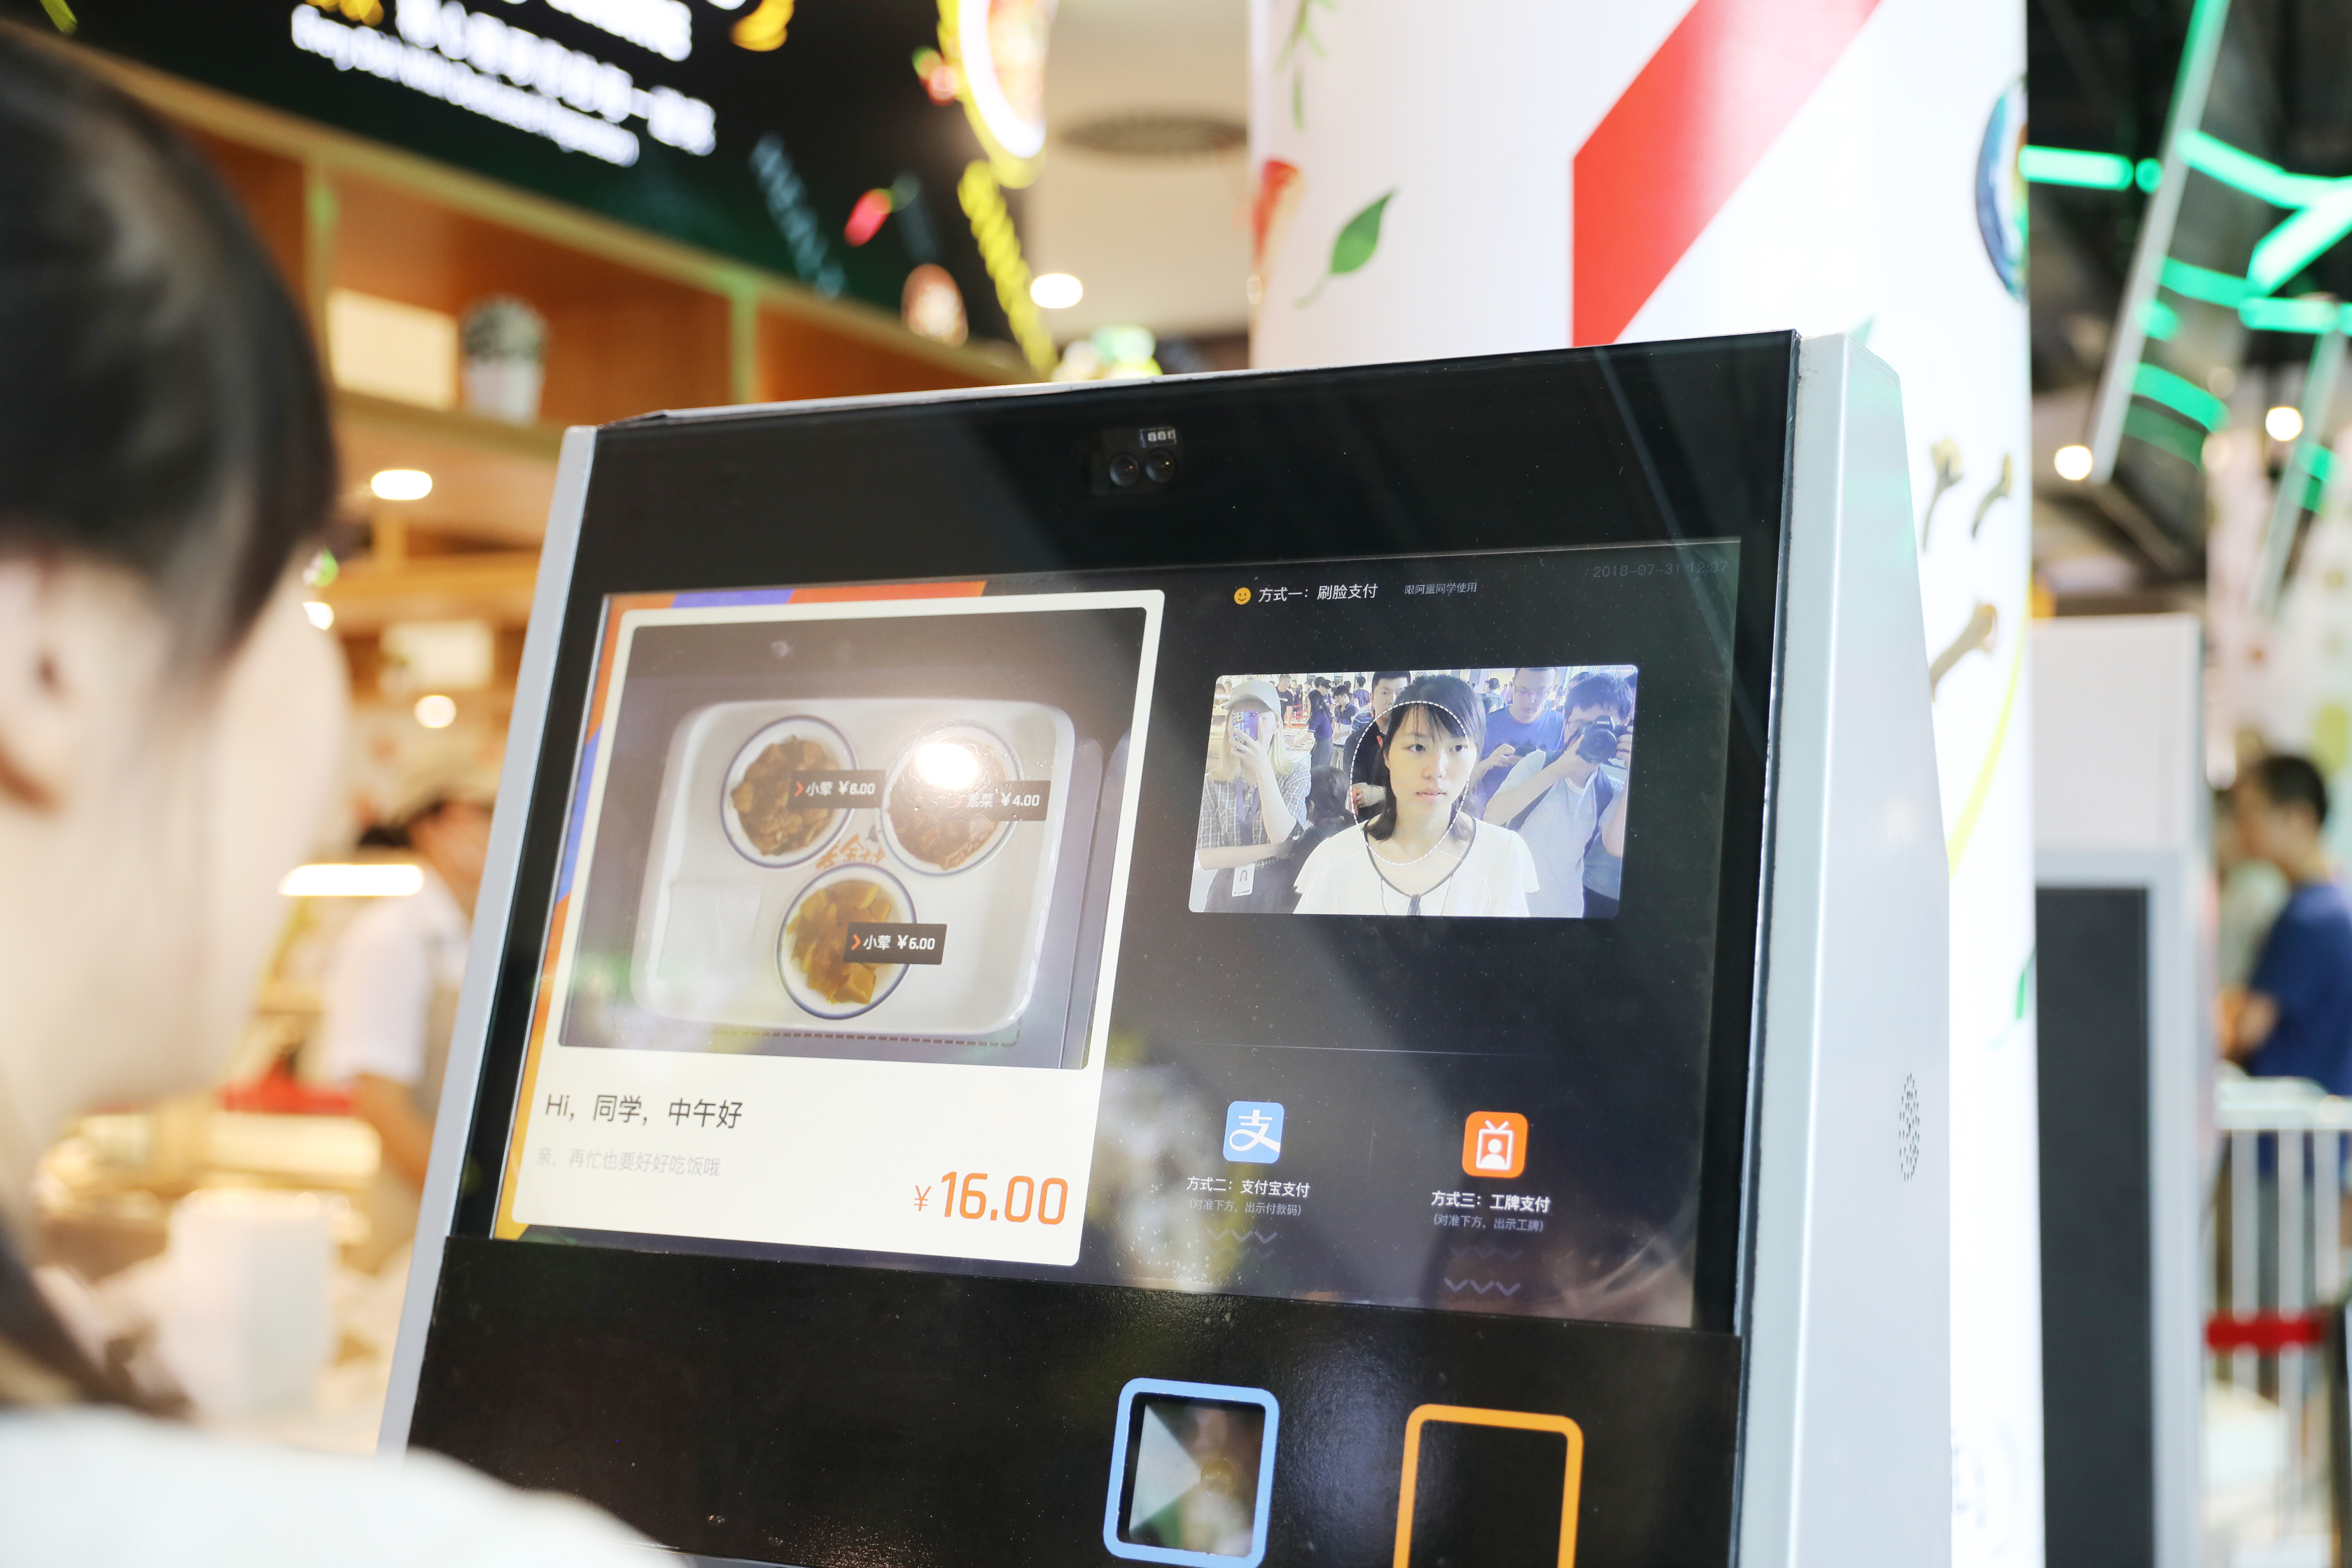 Alibaba employees pay for meals using the face recognition system